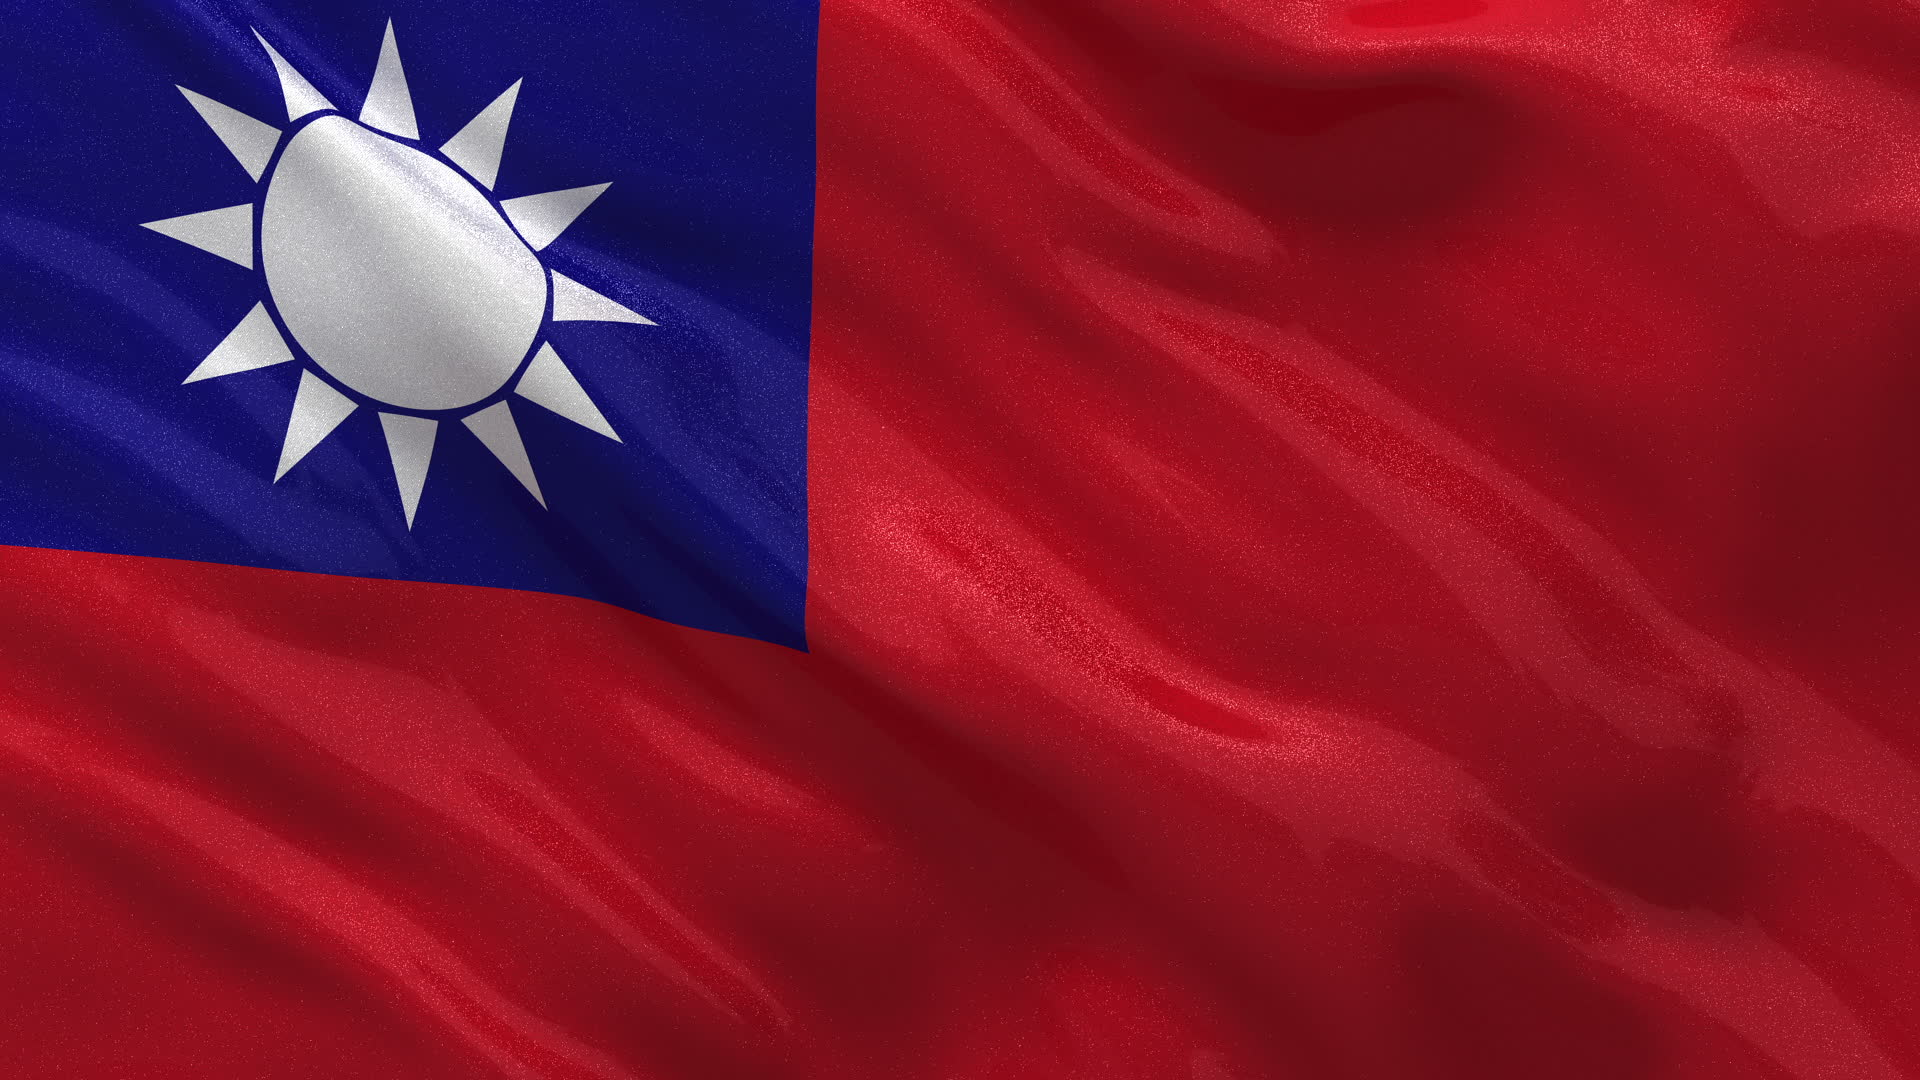 stock-footage-flag-of-taiwan-gently-waving-in-the-wind-seamless-loop-with-high-quality-fabric-material.jpg